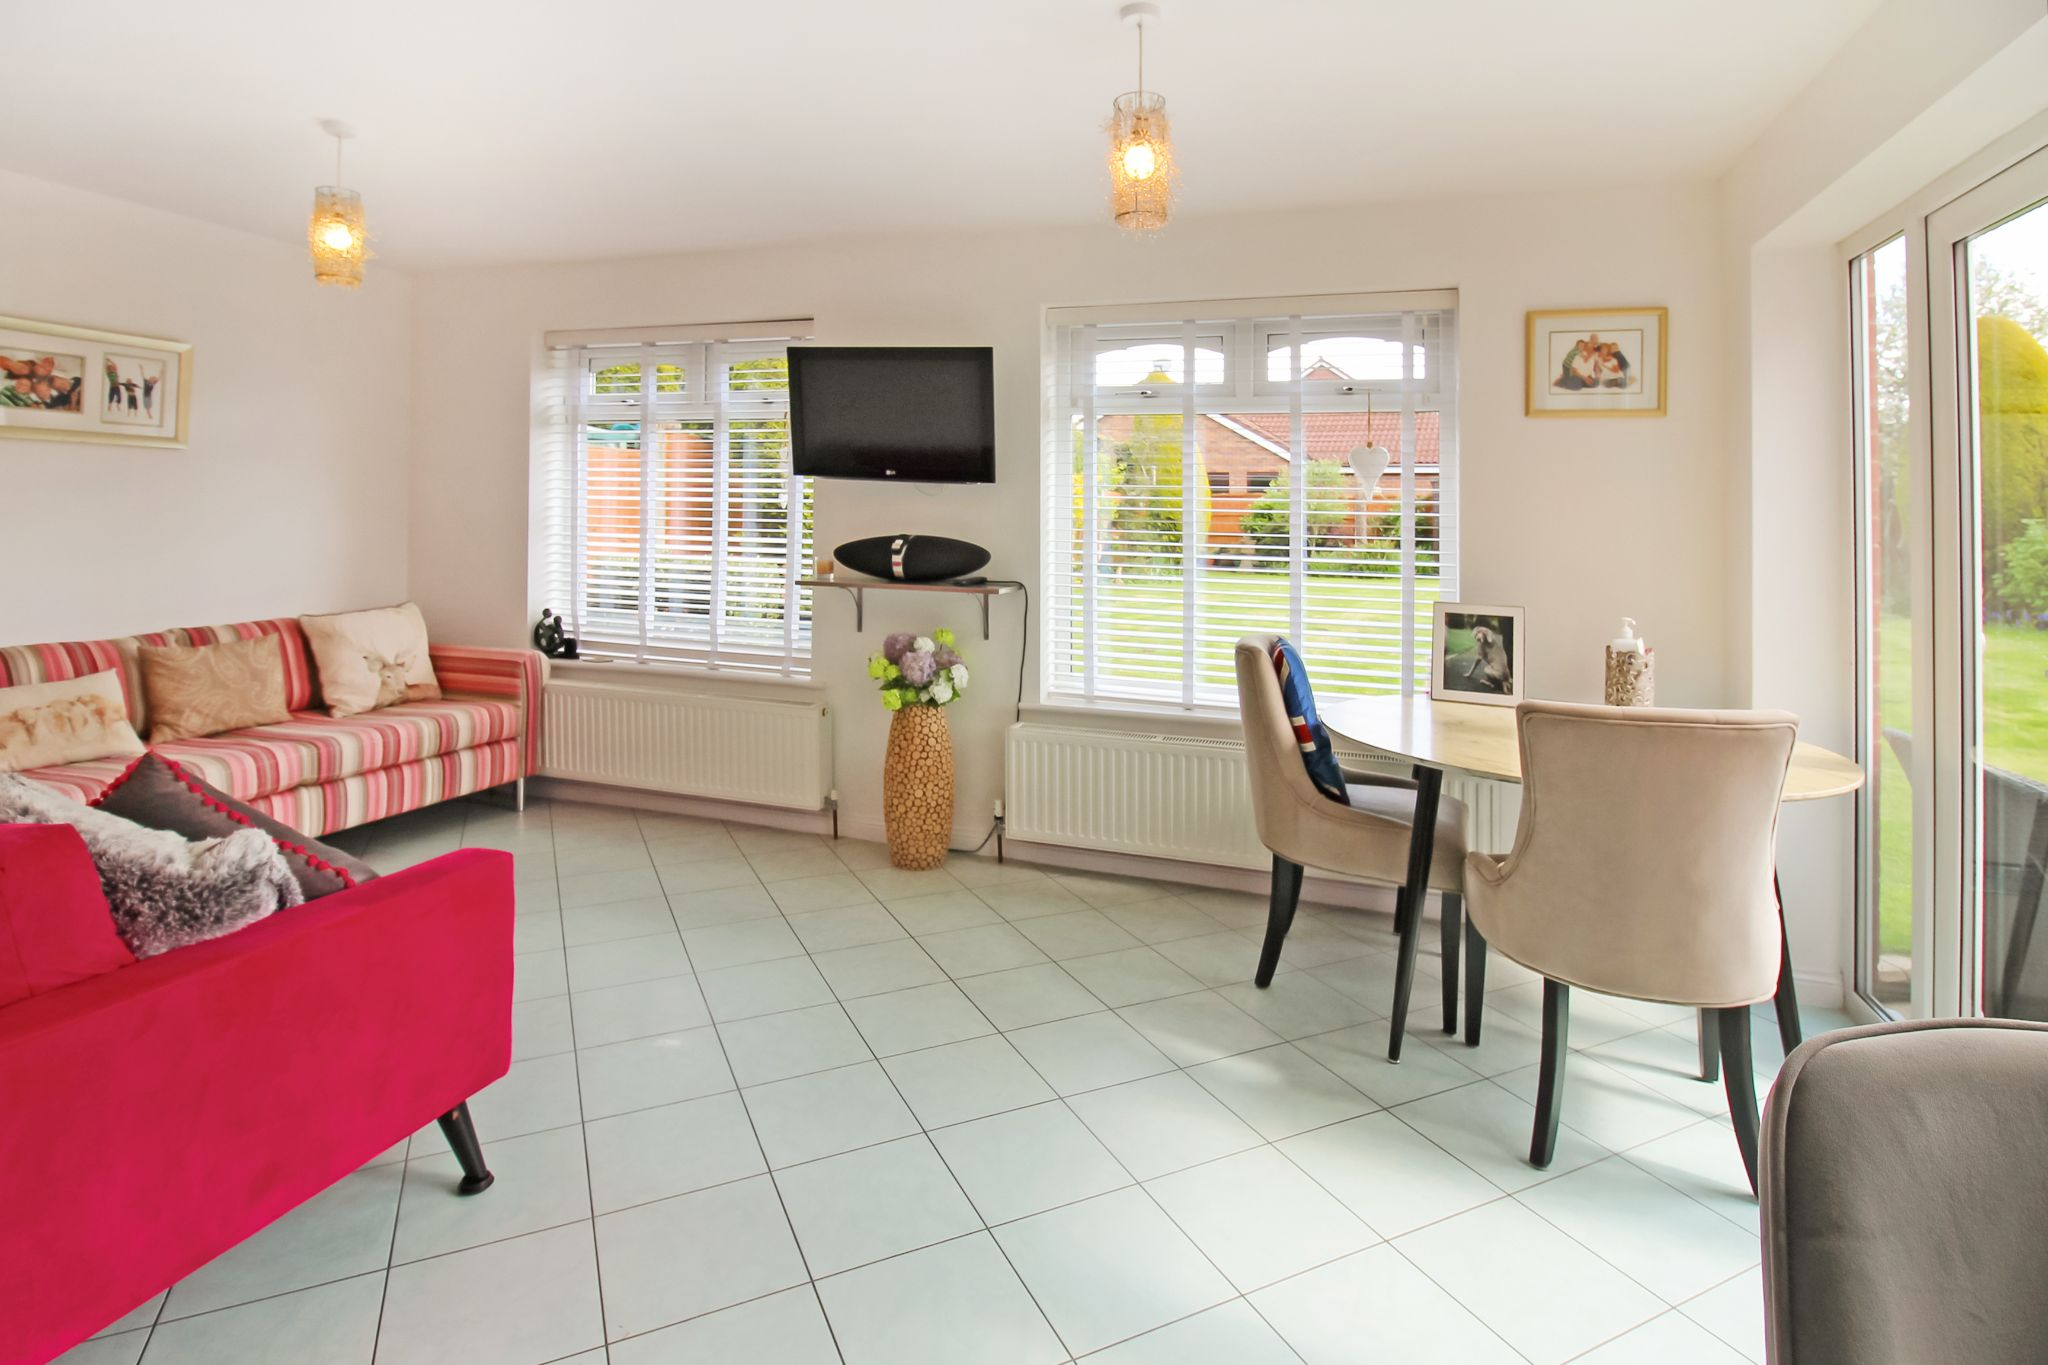 5 bedroom detached house SSTC in Solihull - Photograph 6.